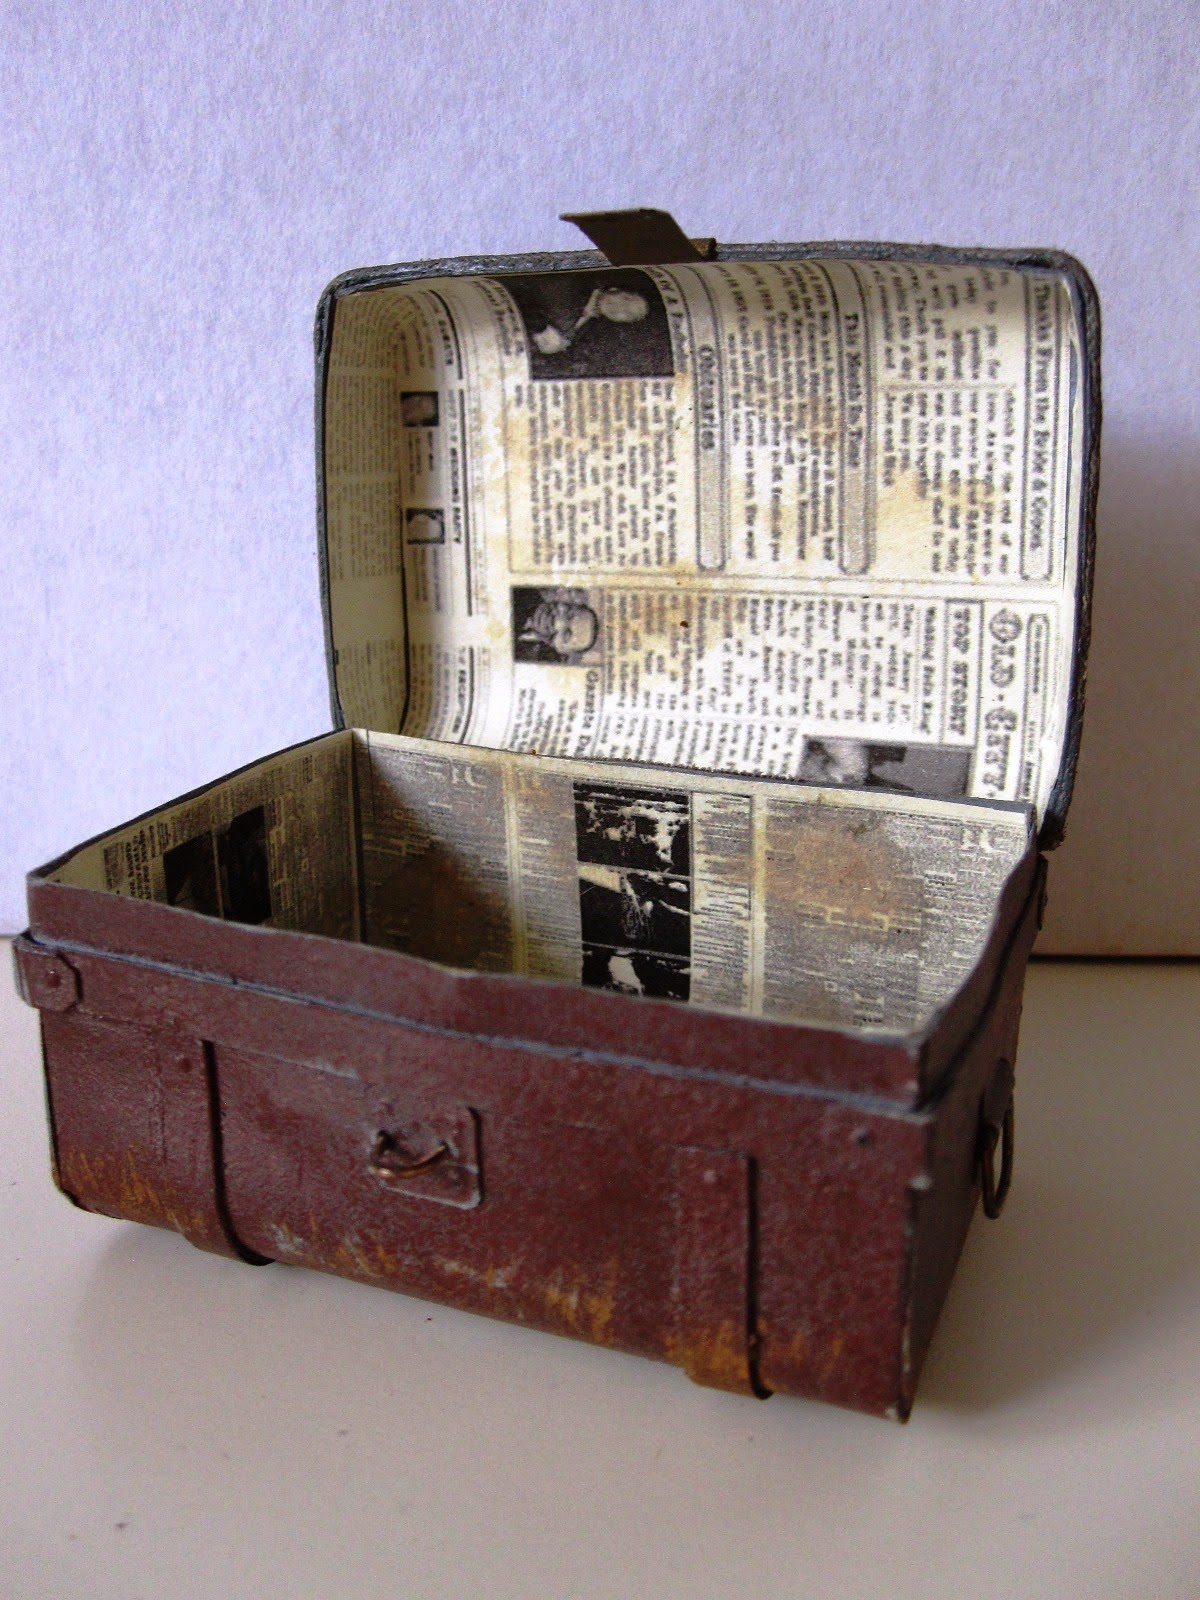 Open miniature vintage tin trunk, showing newspaper lining.